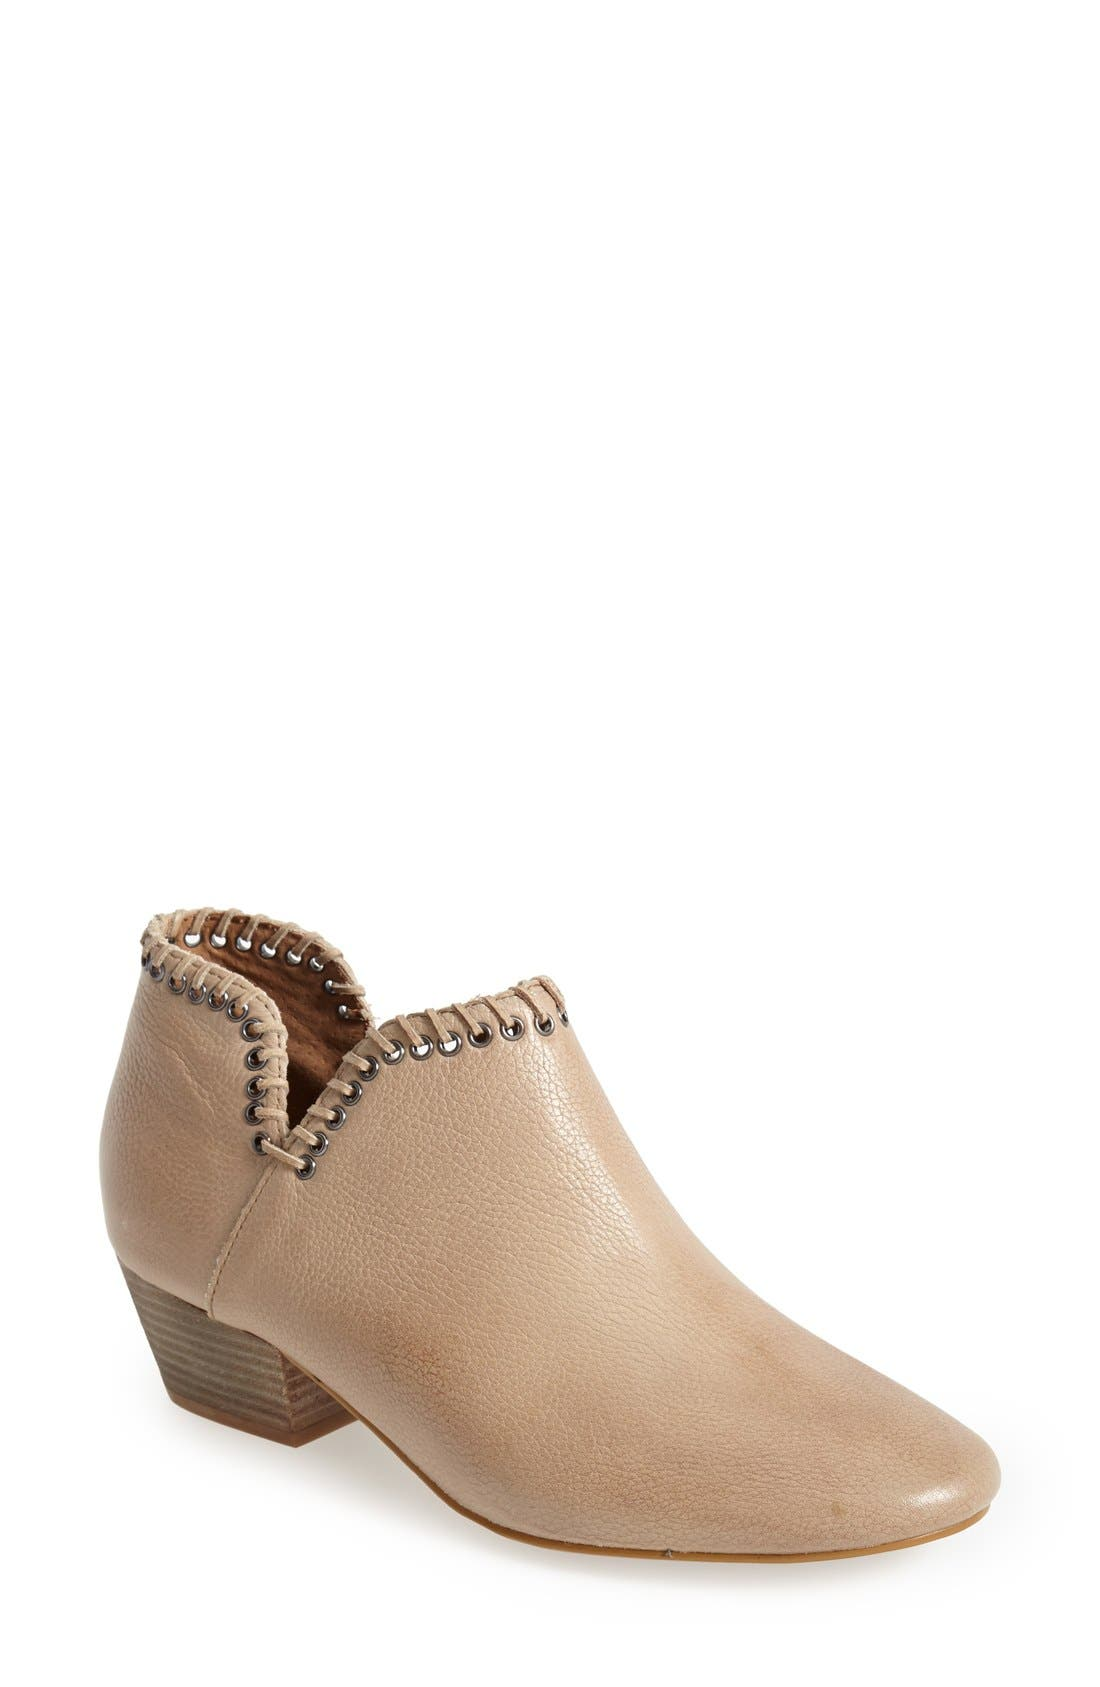 Alternate Image 1 Selected - SIXTYSEVEN 'Sasha' Whipstitch Trim Leather Bootie (Women)